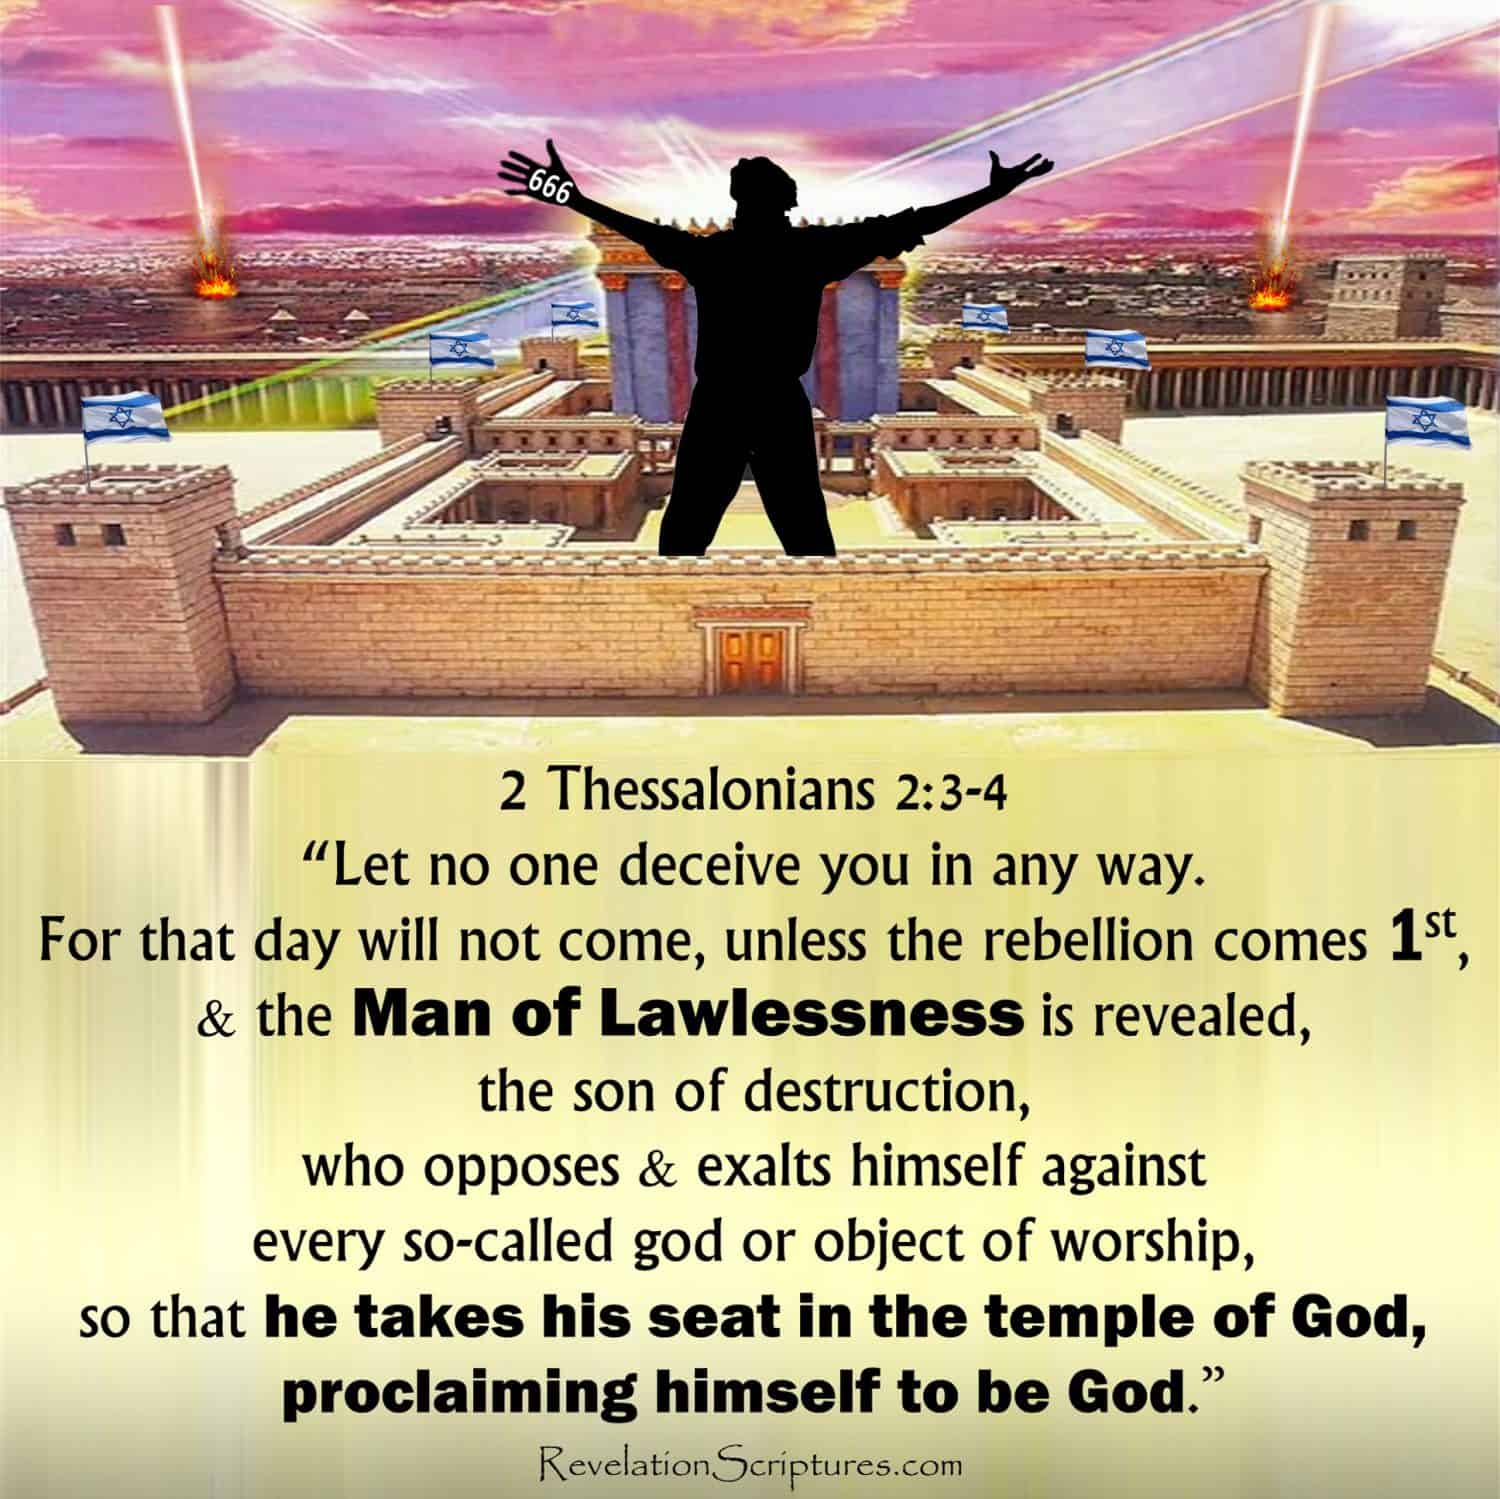 Man of Lawlessness, Man of Sin, 2 Thessalonians 2,2 Thess 2,tribulation,sin,perdition,rapture,pre wrath,Christianbook,Jesus,god,coming of Christ,gathered together to him,don't be fooled,don't be deceived,let no one deceive you,great rebellion,apostacy,comes first,son of destruction,falling away,God's Temple,proclaiming himself to be god,temple of god,sitteth in the temple of god,shewing himself that he is god,holding him back,restraining hime,restrains him,restrains,taken out of the way,Signs,wonders,miracles,satanic signs,satanic miracles,satanic wonders,Antichrist,the antichrist,false prophet,false prophet of Revelation,beast,beast of Revelation,666,mark of the beast,fire from the sky,3rd temple,political Zionism,fake Jews,lying Jews,synagogue of Satan,Chabad.org,Chabad-Lubavitch,temple mount,The Temple Institute,menorah,red heifer,covenant,arc,showbread,table,lampstand,priestly,Jerusalem,Israel,free mason,high priest,Judaism,Zionism,rebbe,Jews,synagogue of Satan,biblical antichrist,man of perdition,mark of the beast,worship image,image of the beast,state of Israel,book of Revelation,apocalypse,final deception